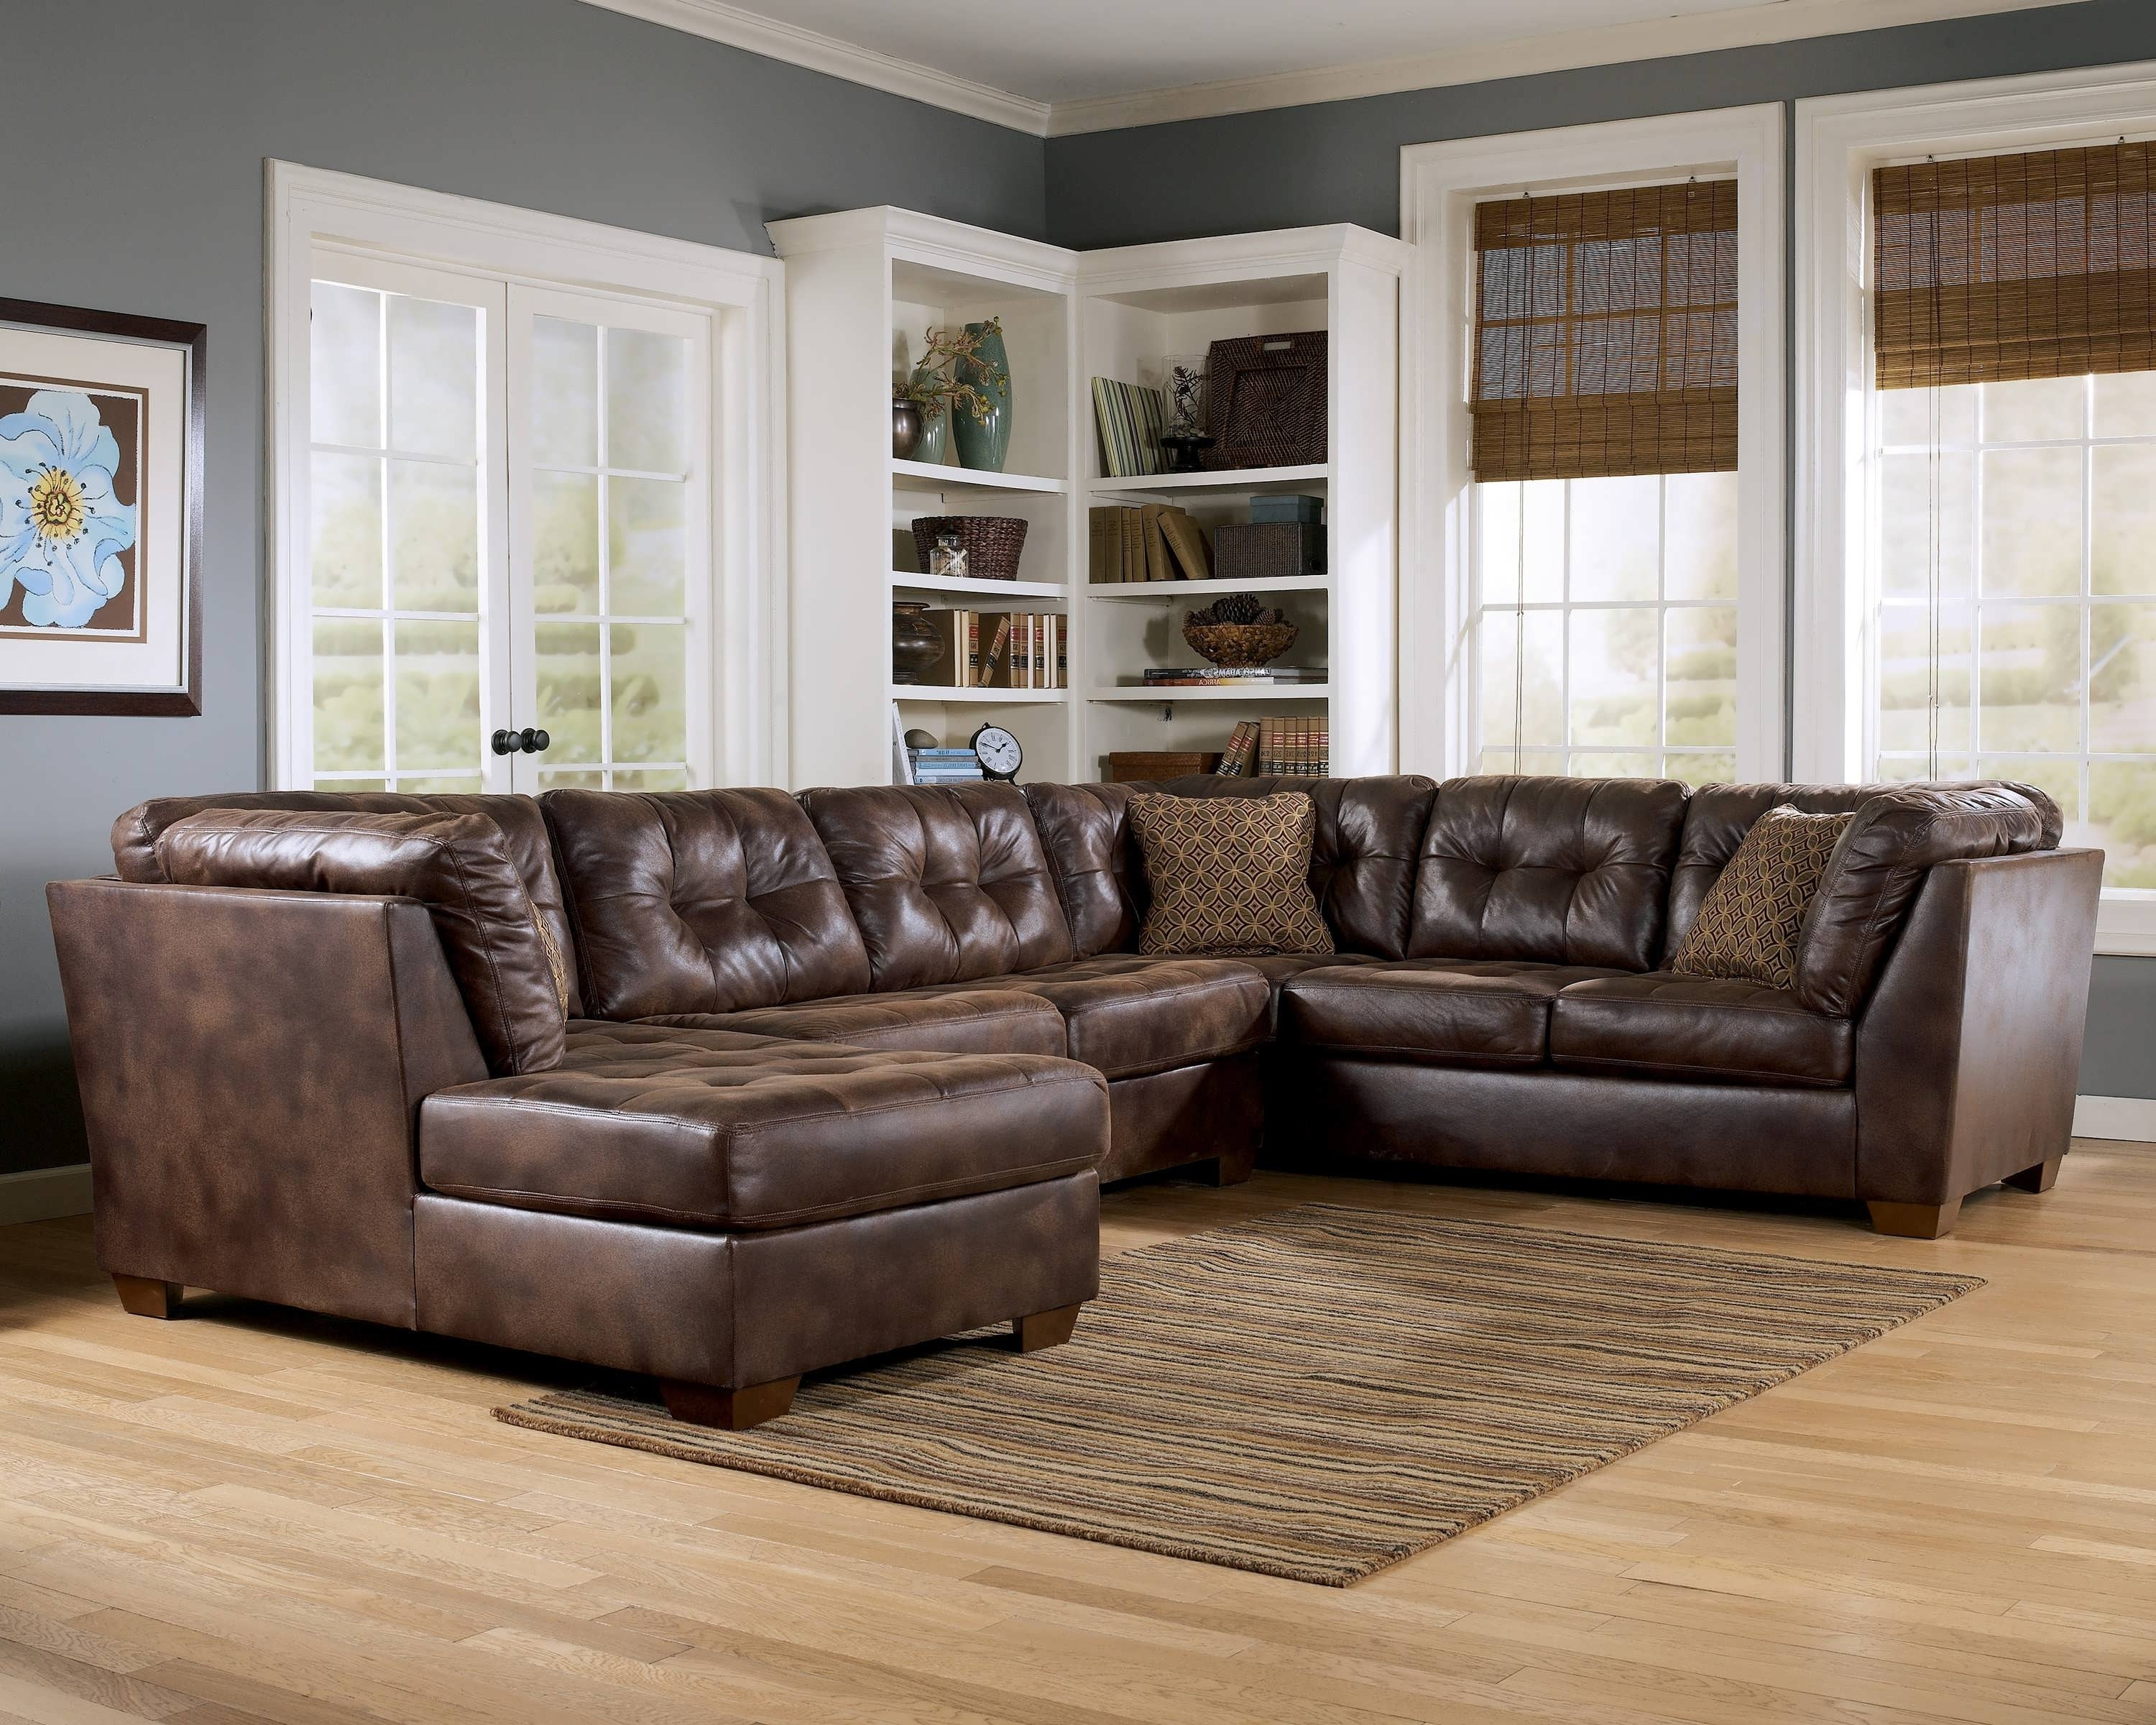 Trendy Sofa Leather Sectional Sofas Collection Of Brown Black Couch For Throughout Memphis Sectional Sofas (View 17 of 20)